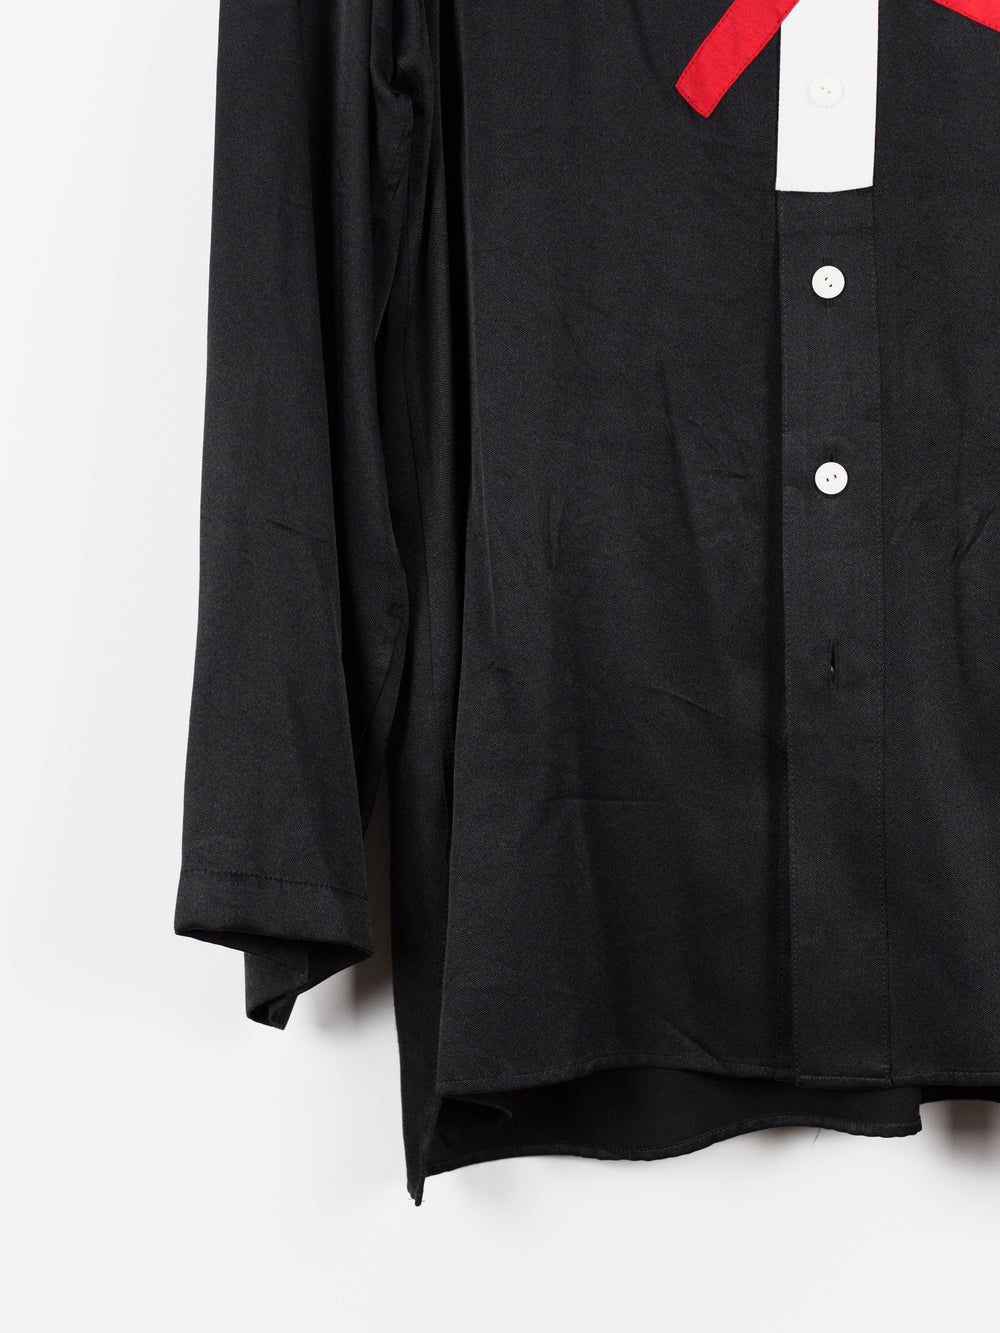 Yohji Yamamoto Pour Homme SS17 Pullover X Patchwork Silk Shirt